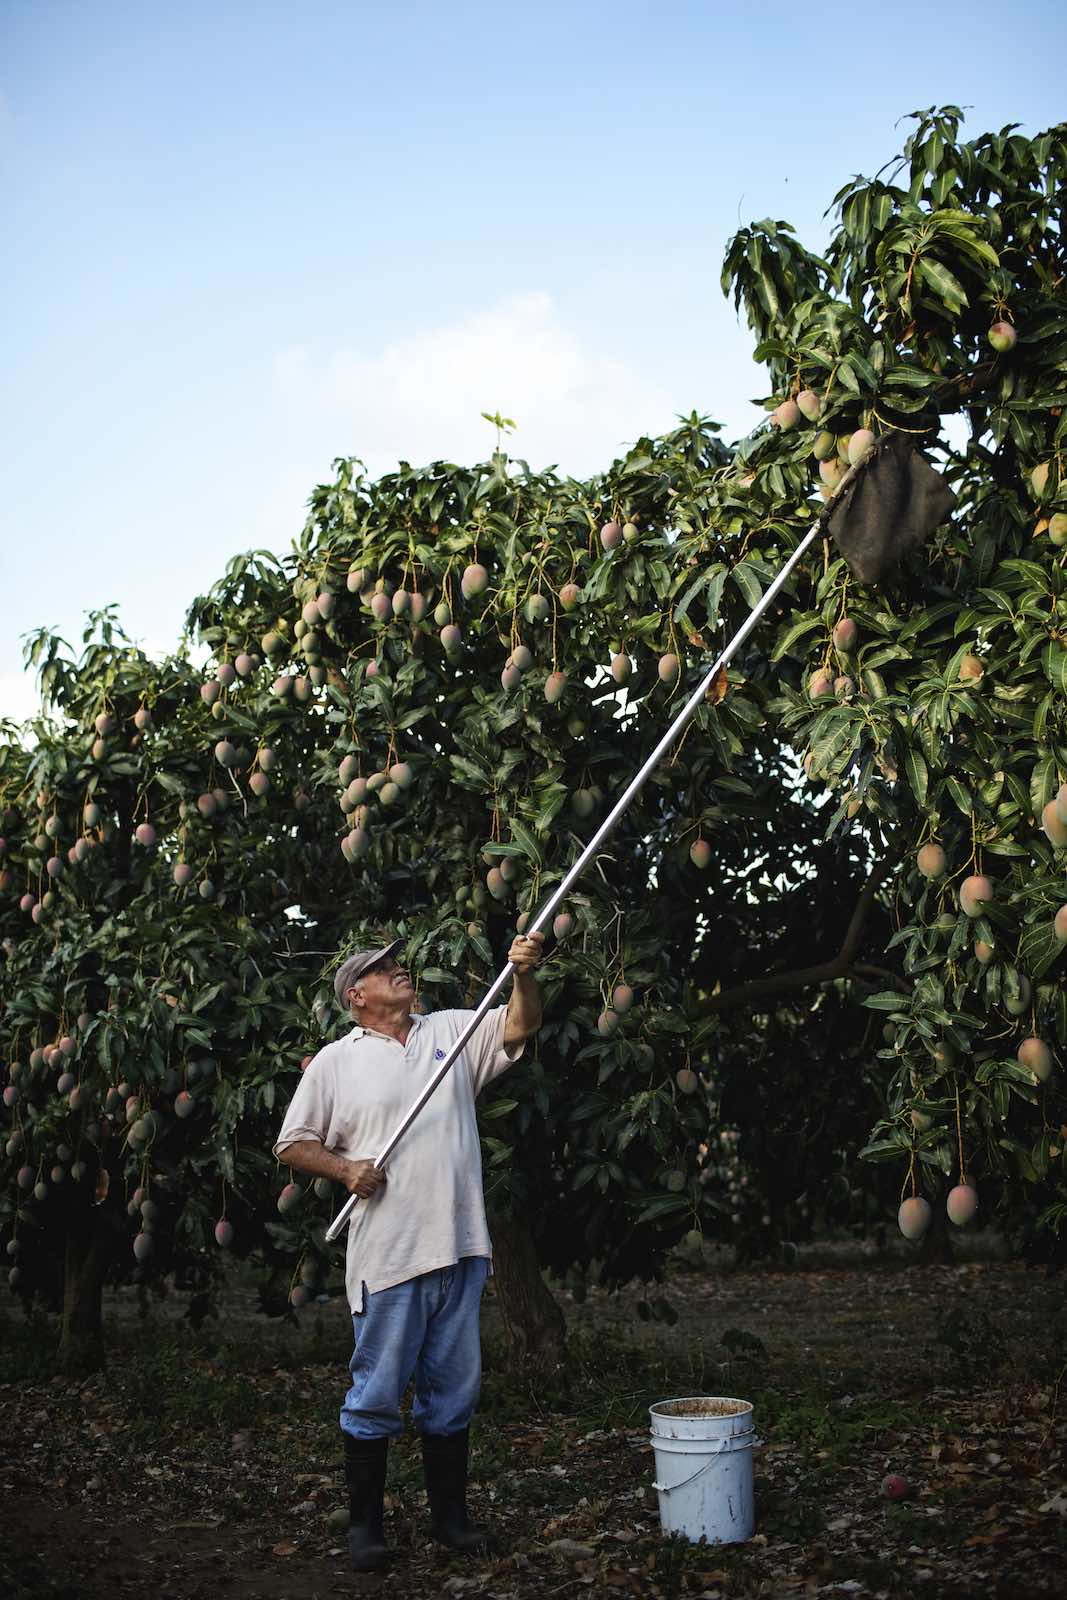 Farmer using a long pole to pick mangos from the tops of trees.